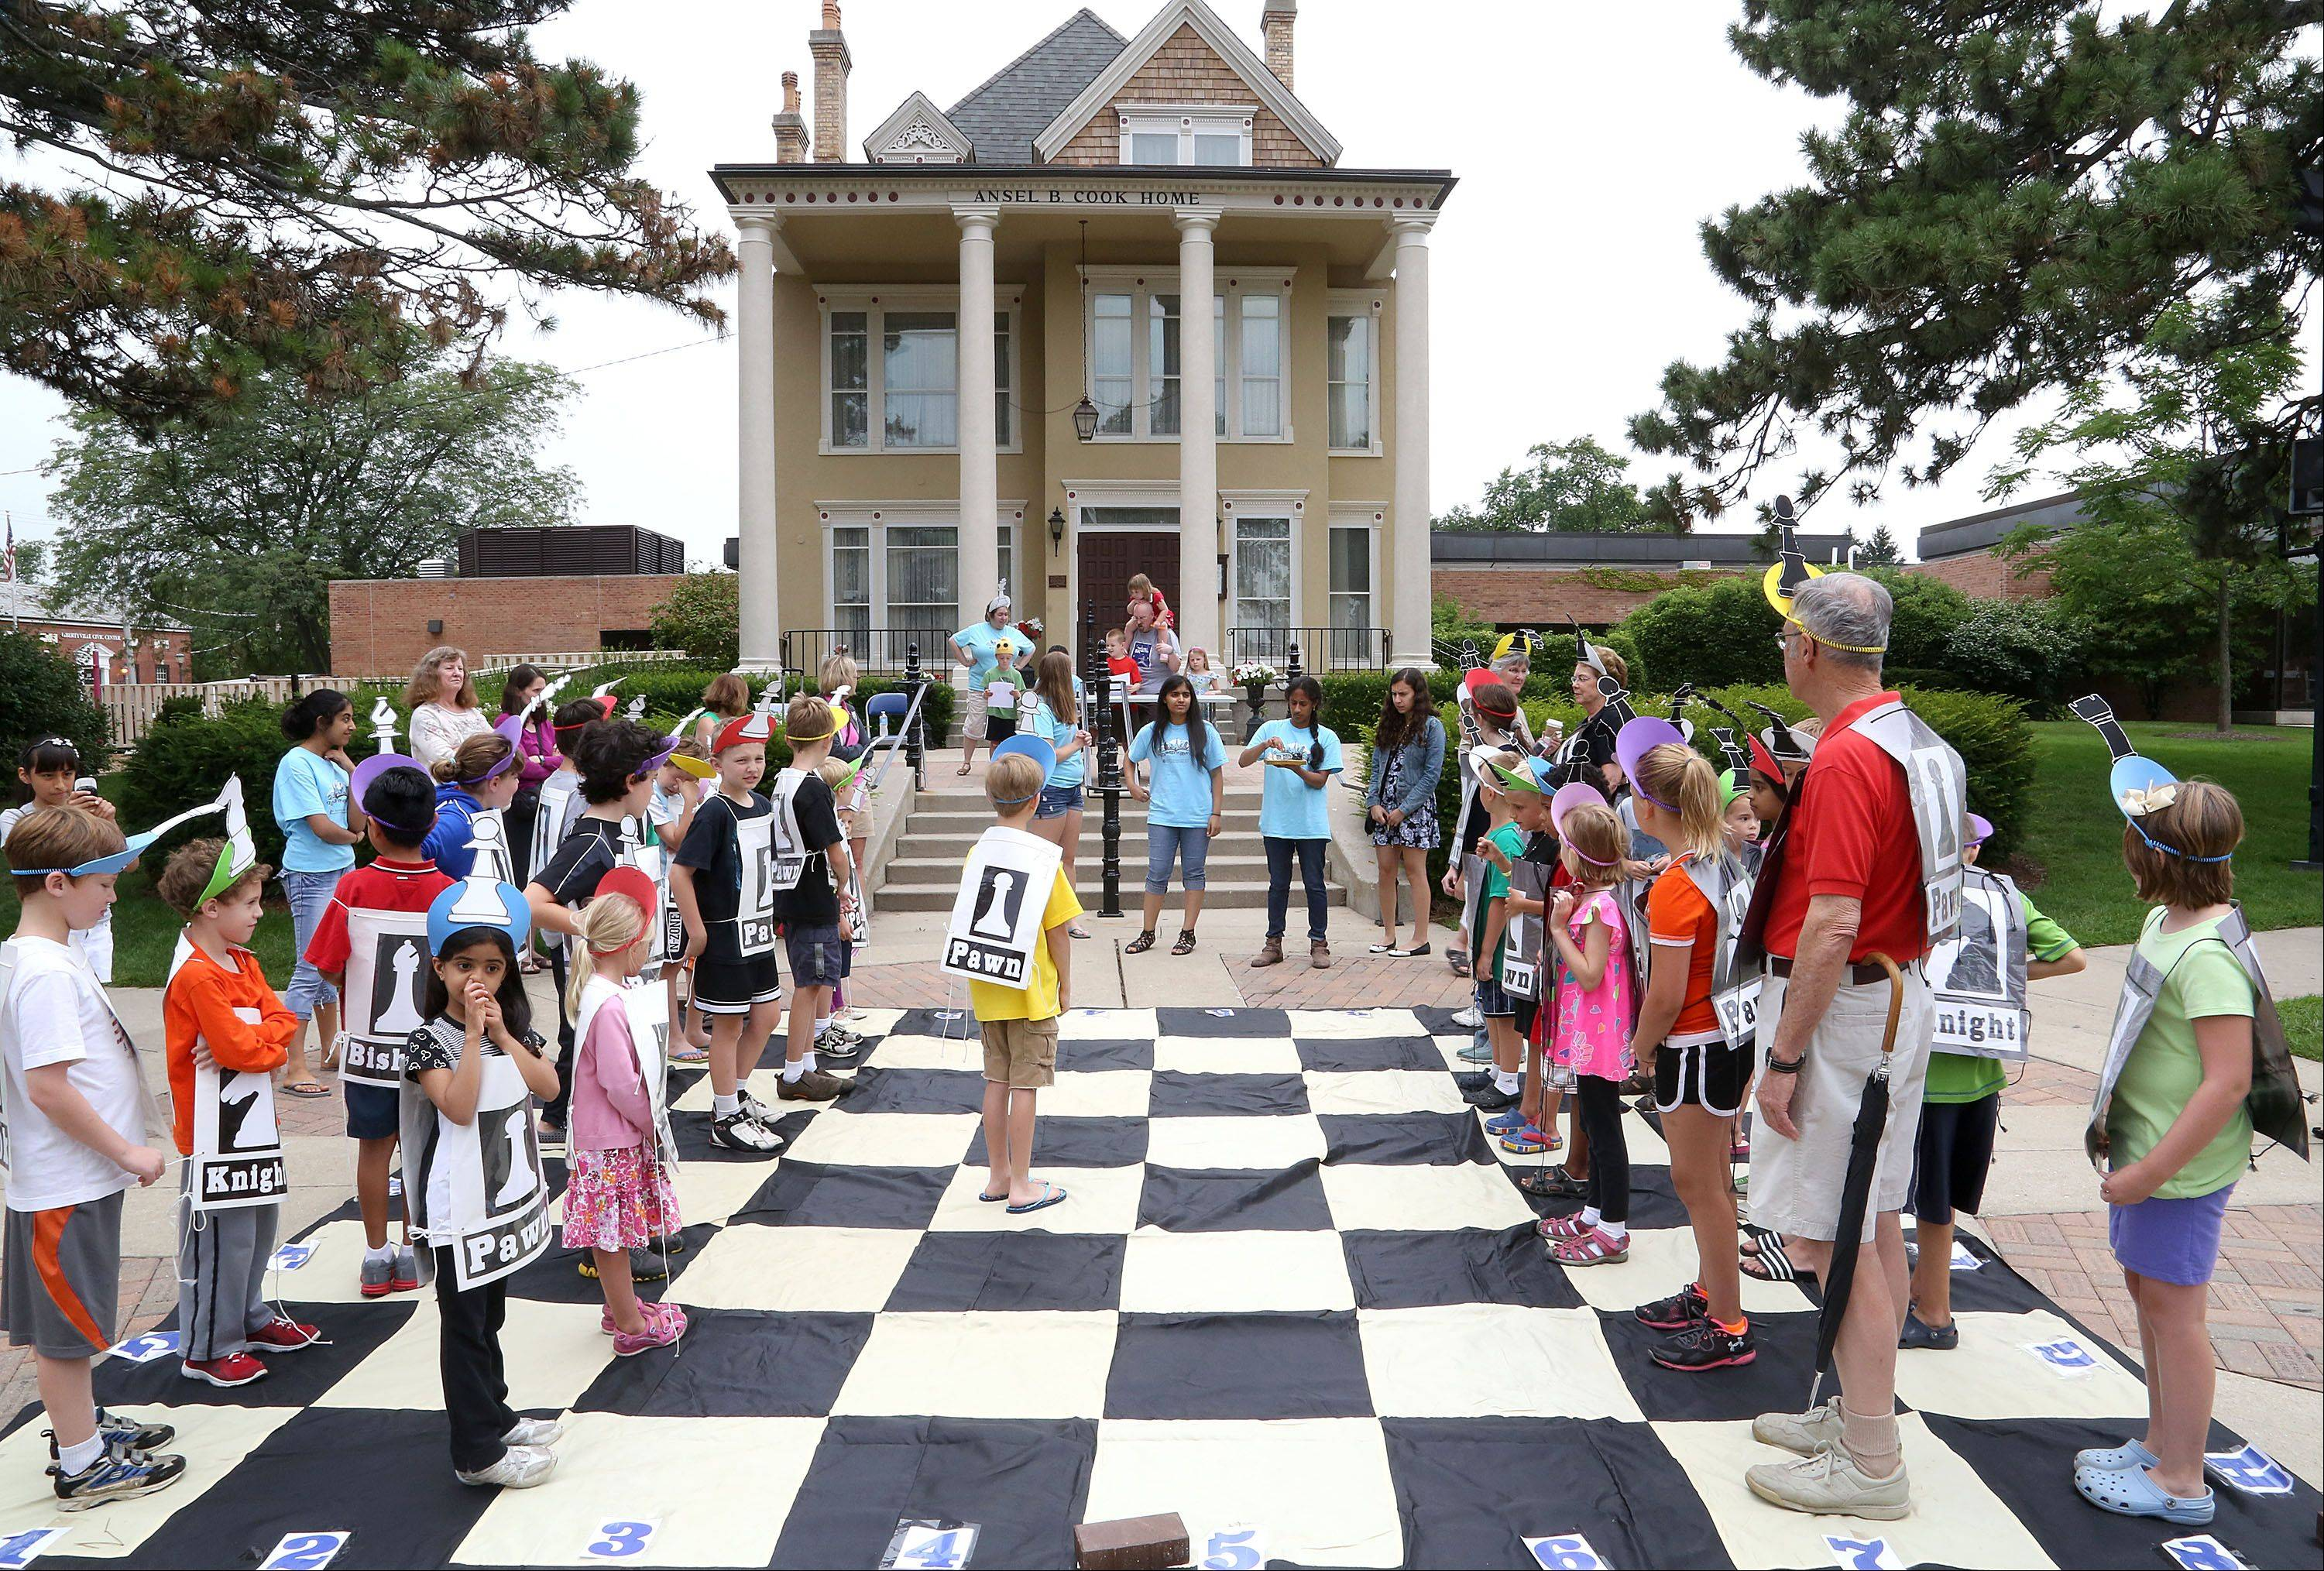 Kids take the role of chess pieces as Cook Park Library offered life-size chess in Cook Park in Libertyville Tuesday.